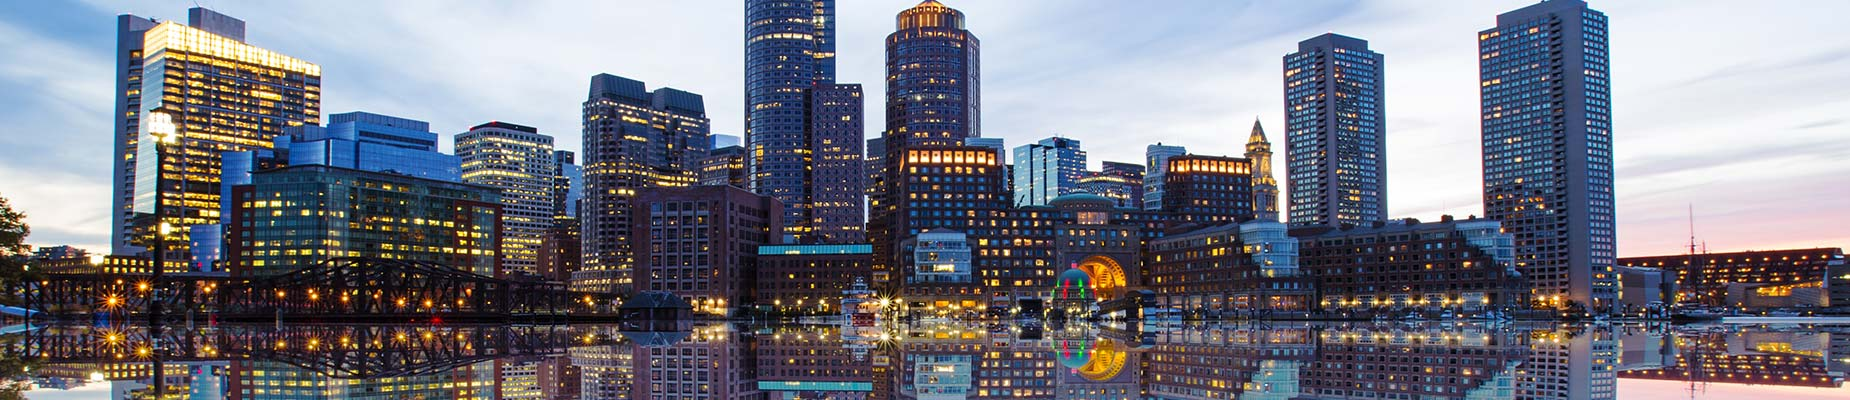 Boston, MA Human Resources Consulting and Outsourcing